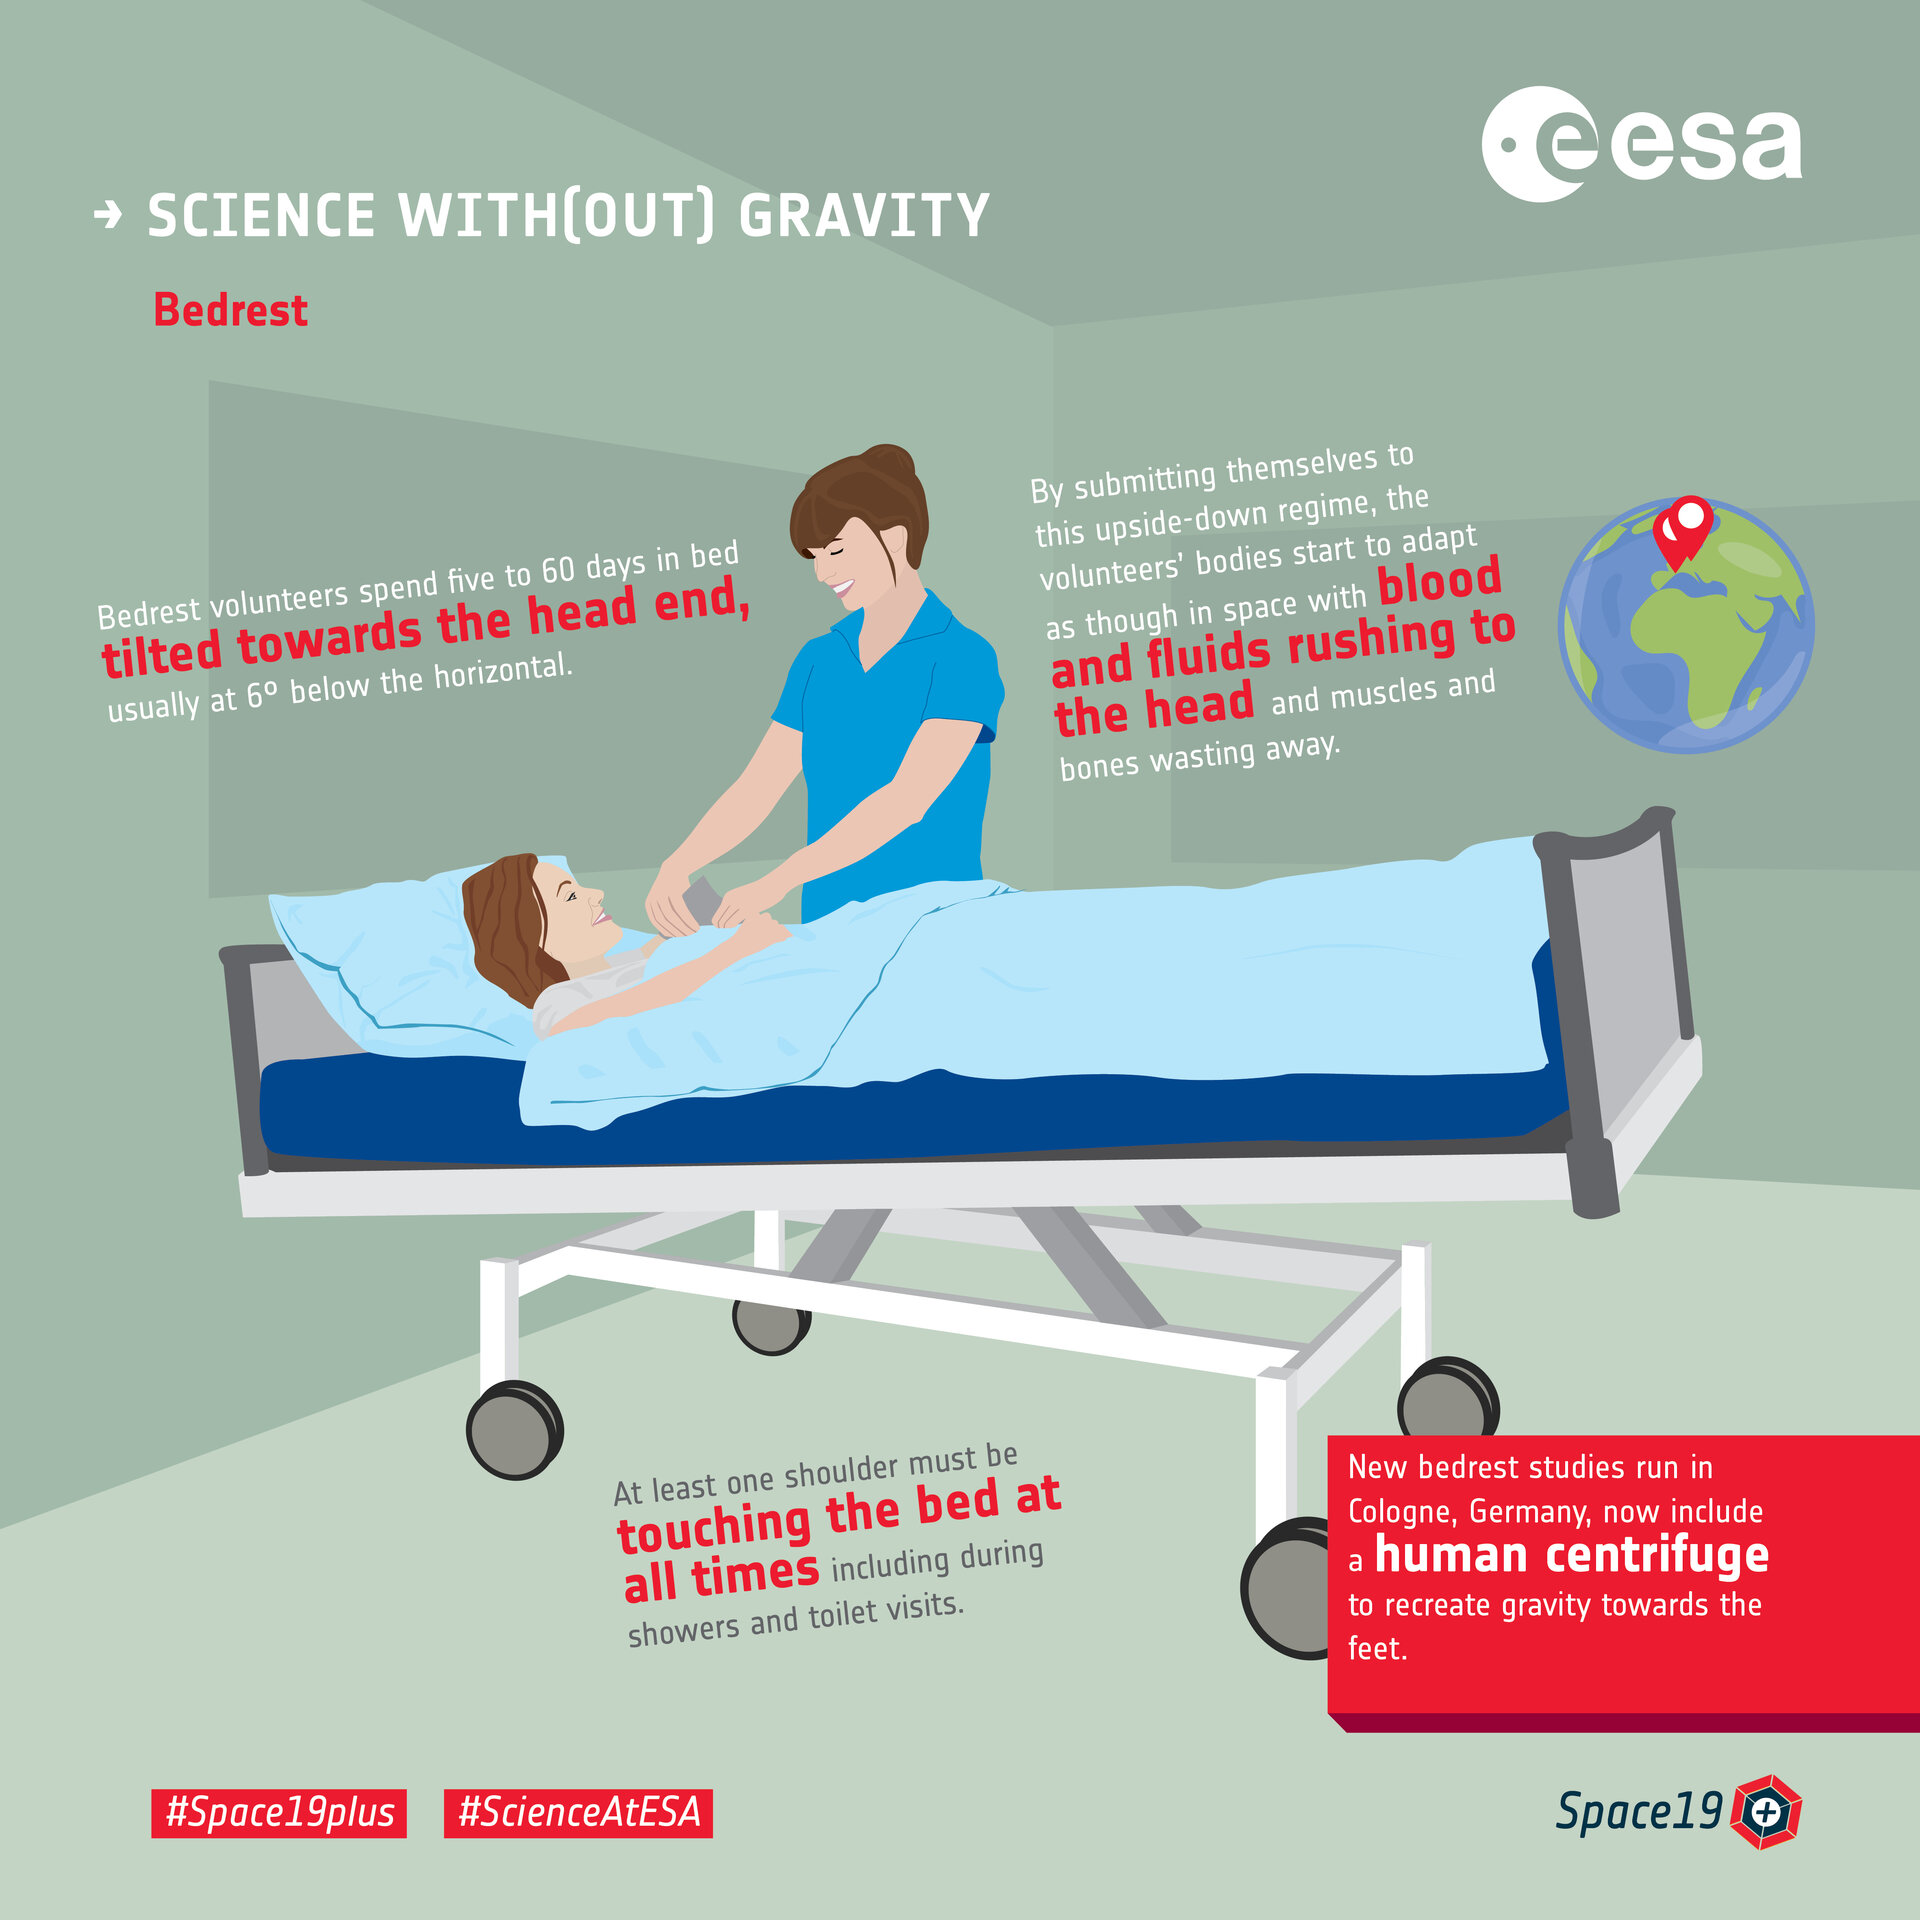 Science with(out) gravity  – bedrest